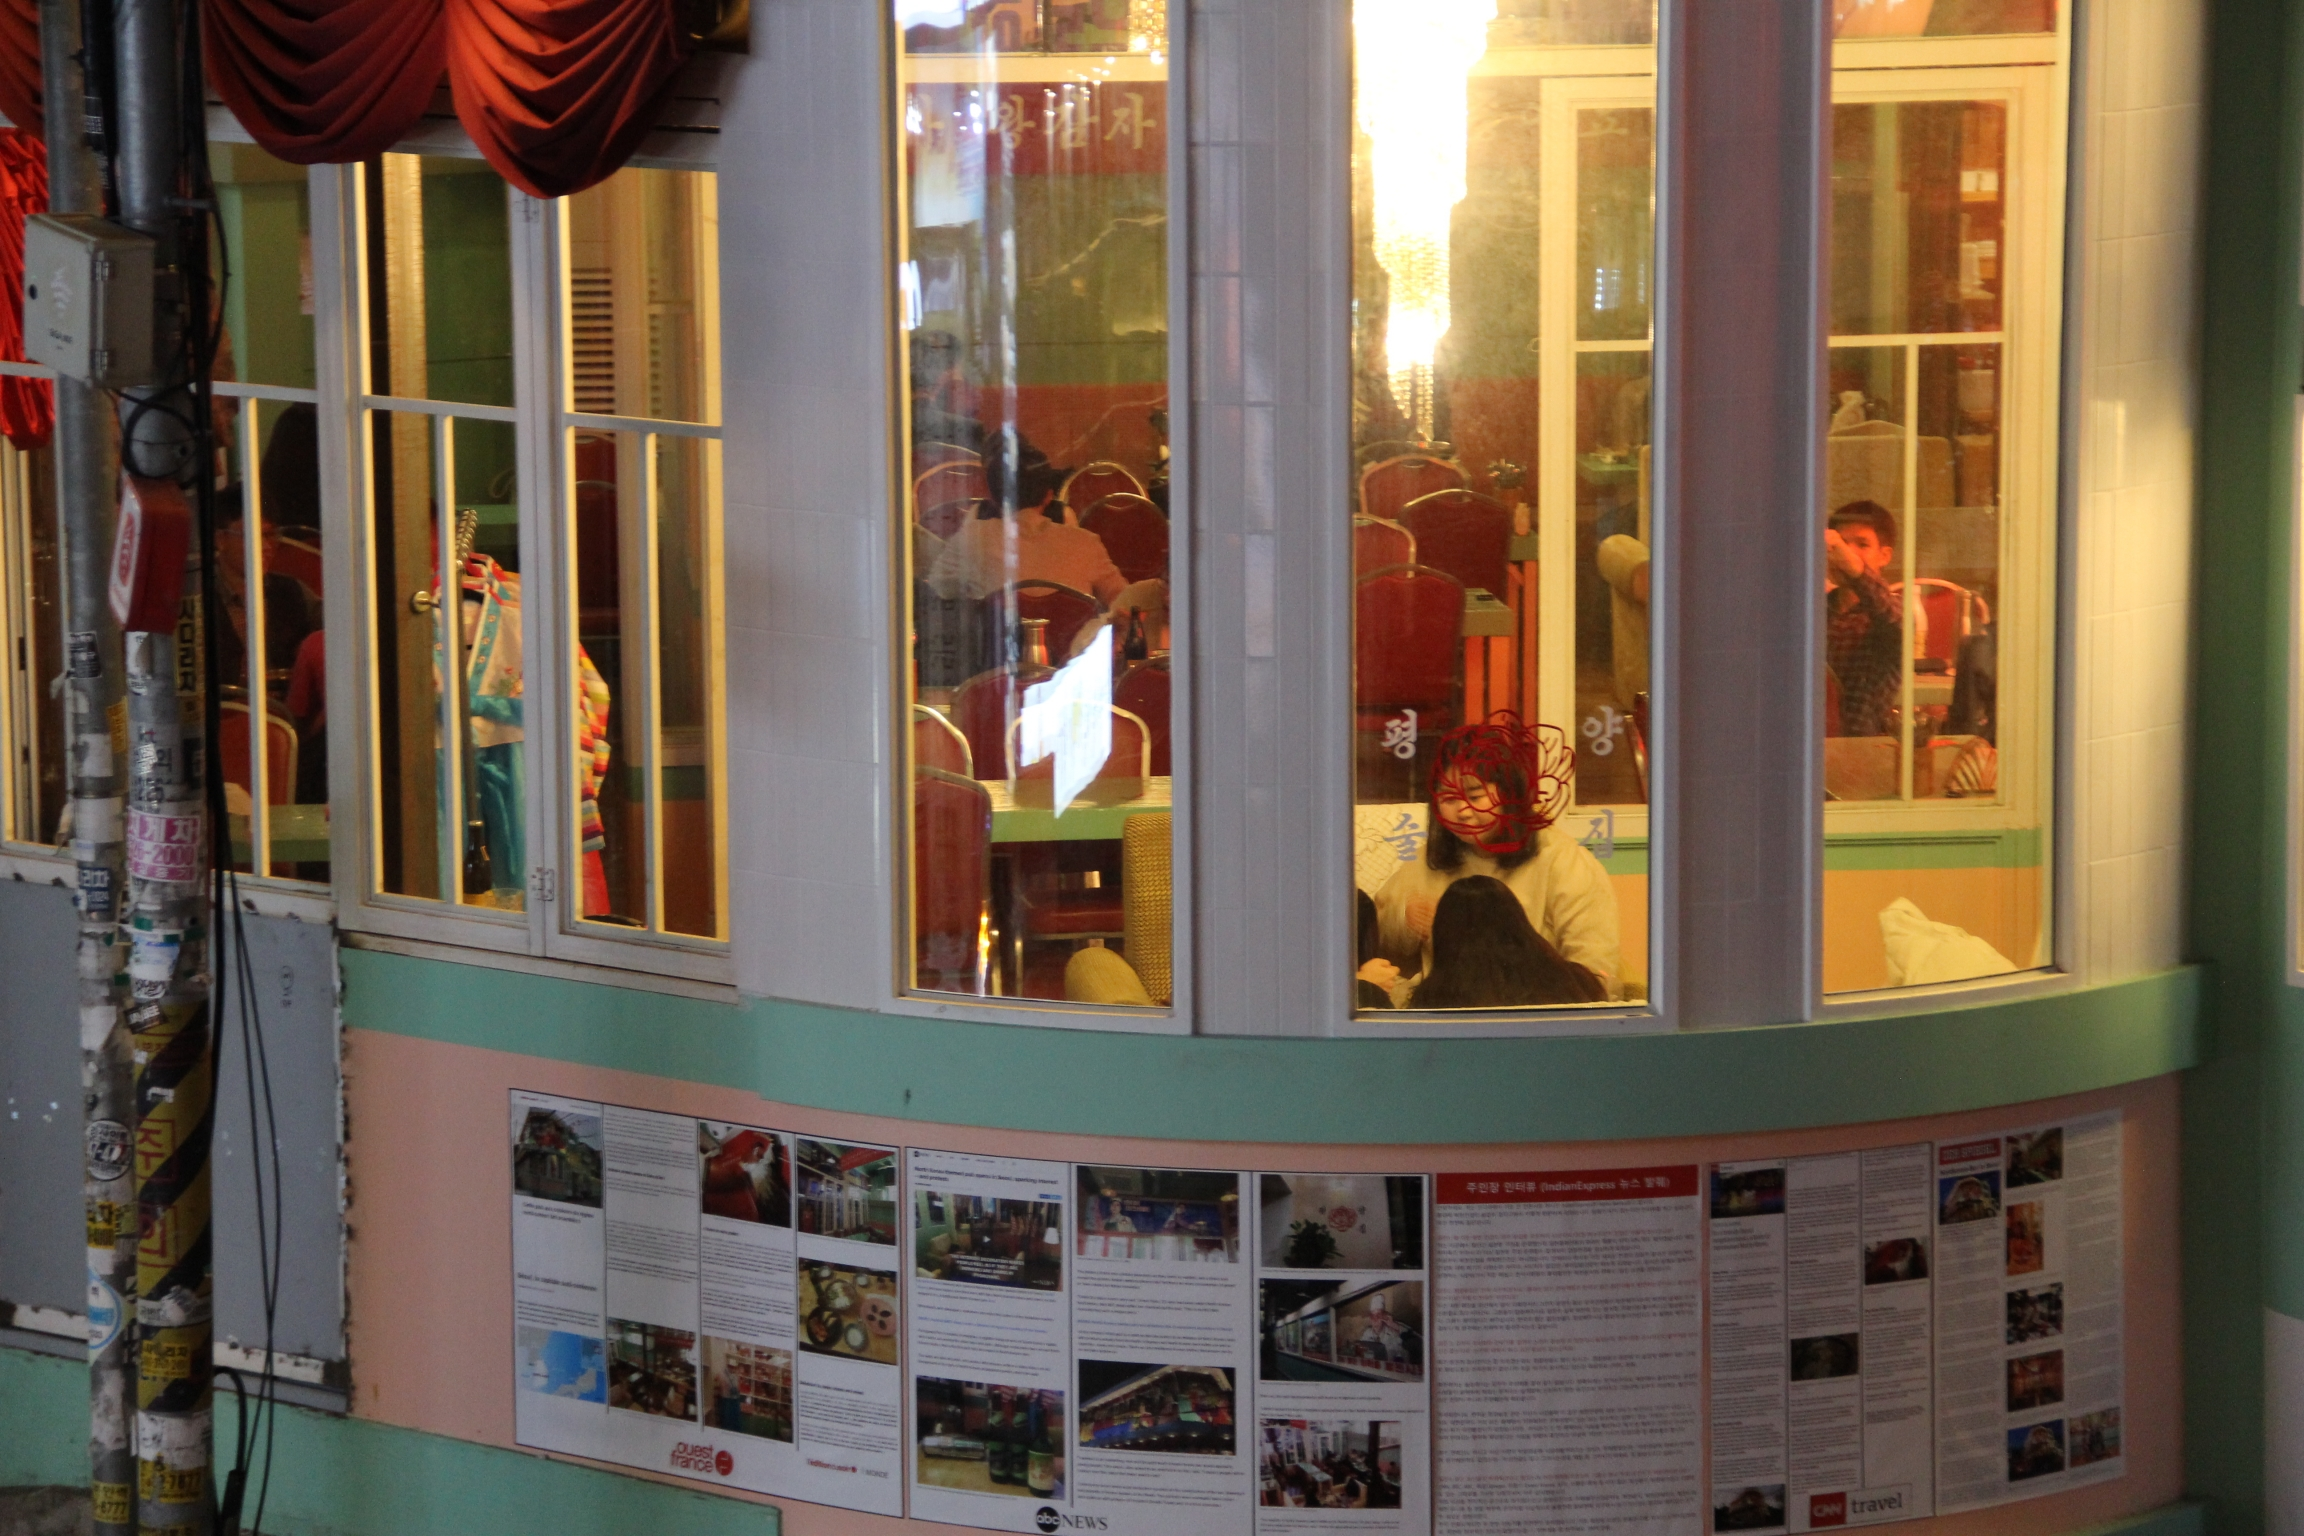 Articles about the pub published by foreign media outlets are taped on the mint walls outside which are reminiscent of North Korea's pastel-colored buildings.